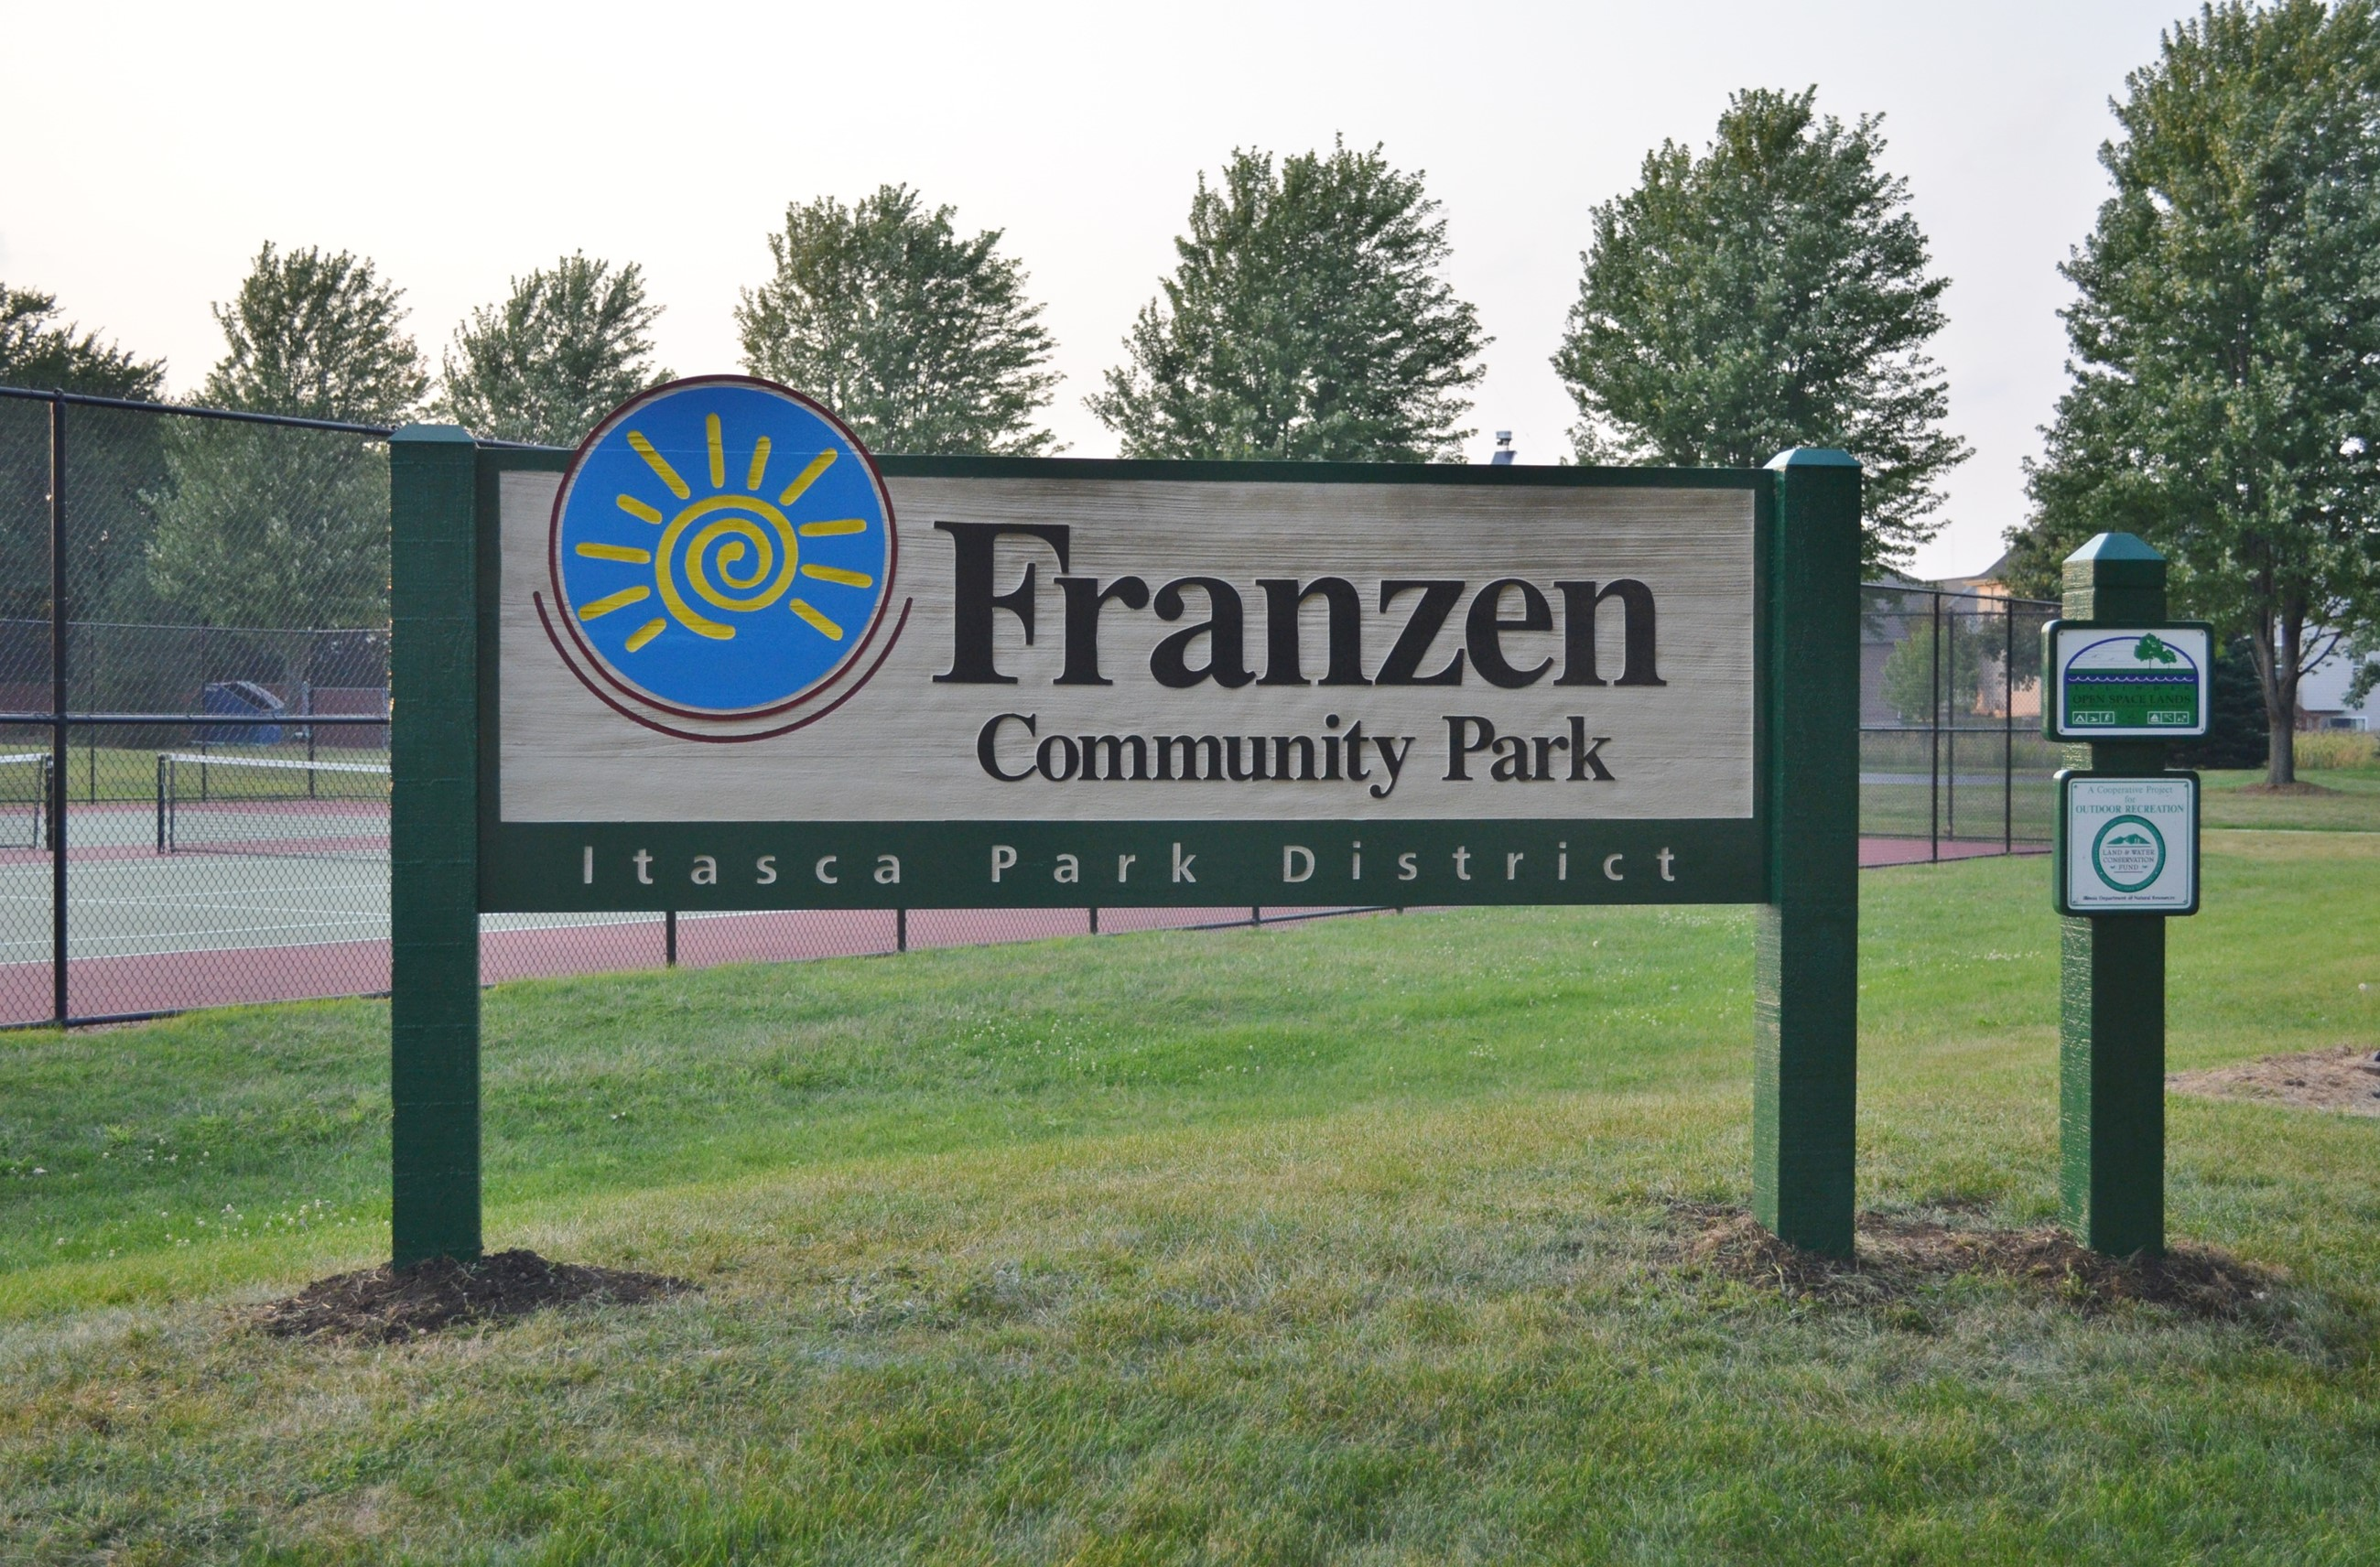 2015 9 New Franzen Comm Park Sign.JPG